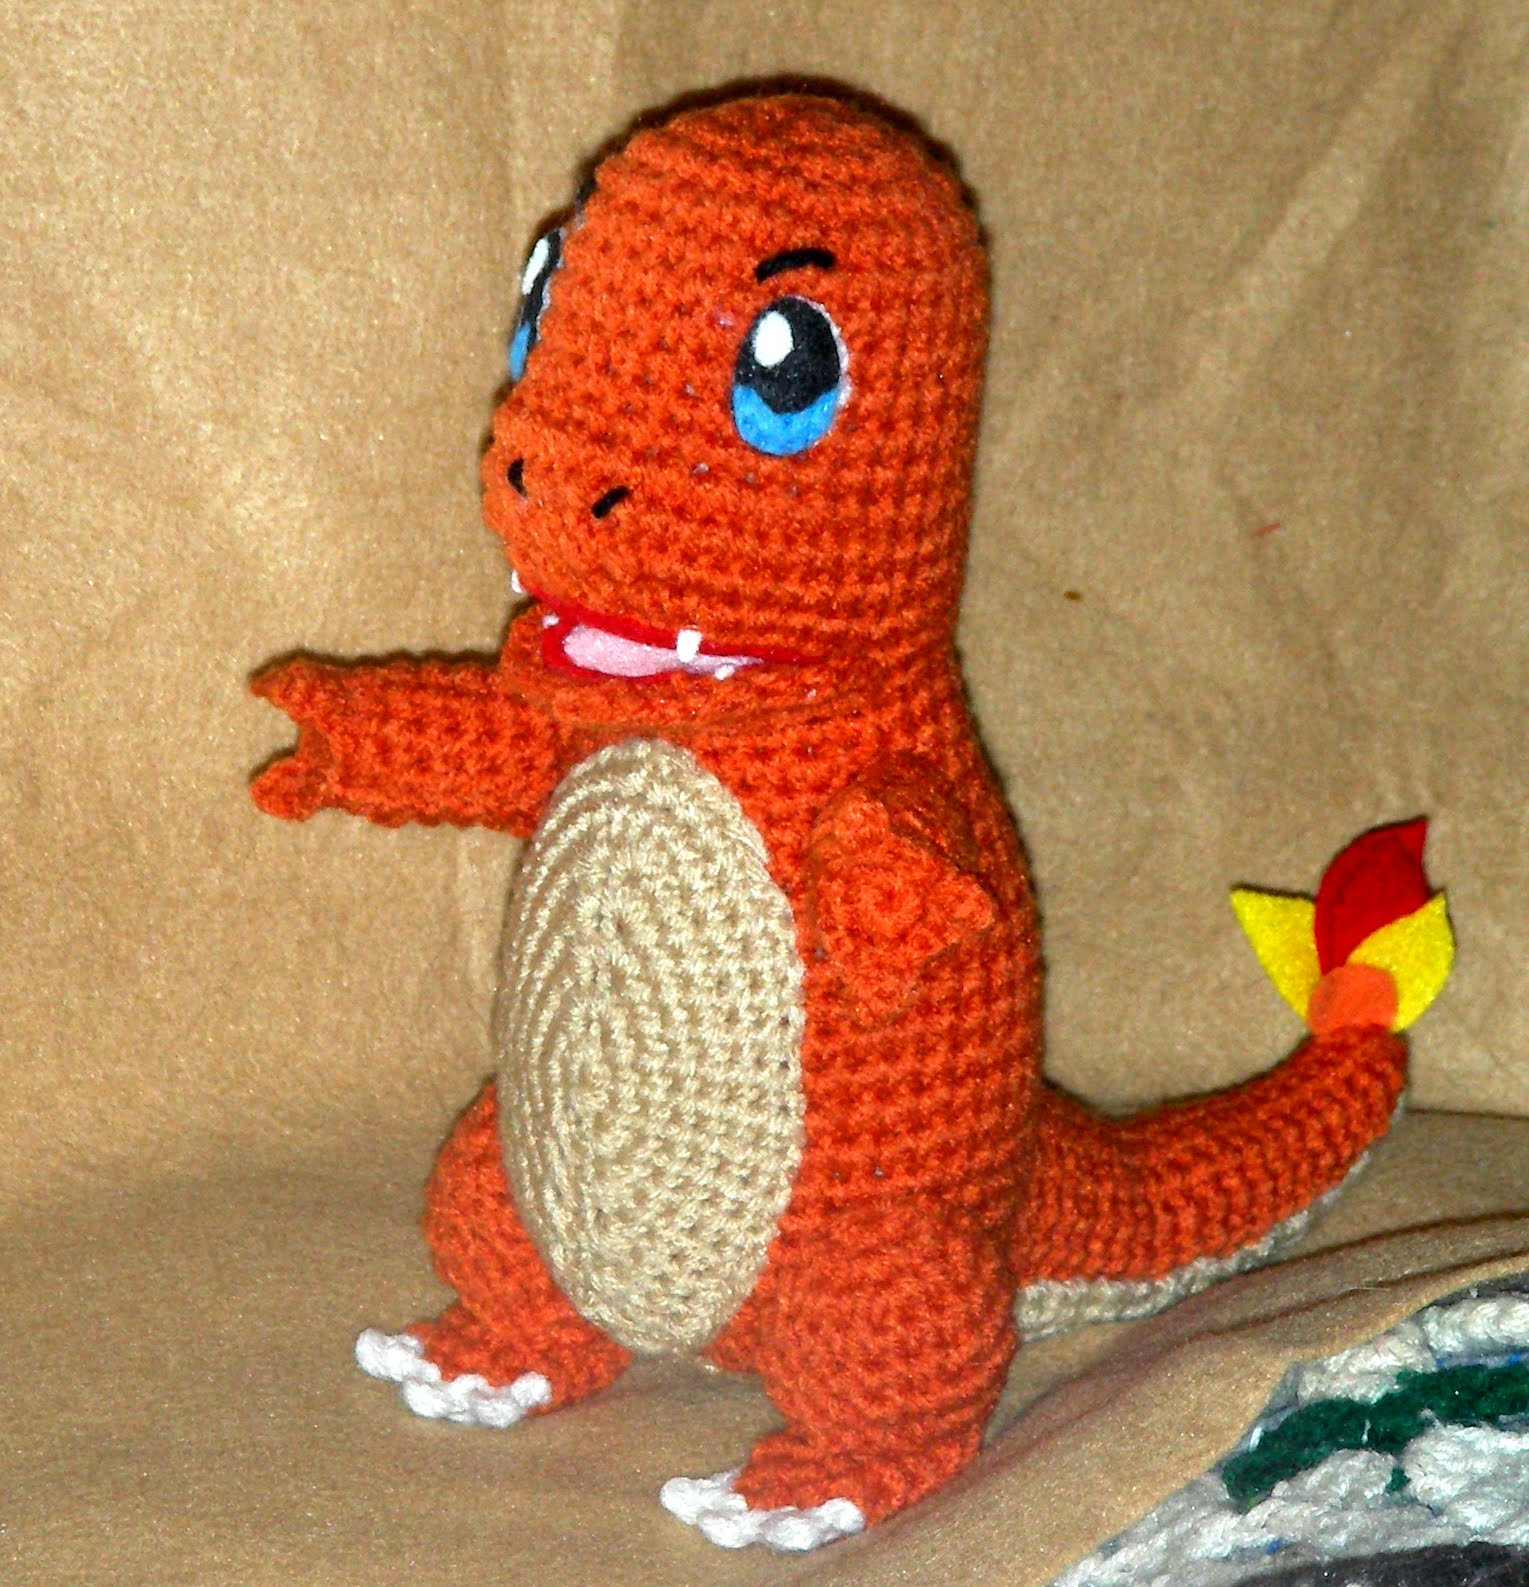 17 Pokemon Crochet Patterns You'll Adore | FaveCrafts.com | 1587x1529